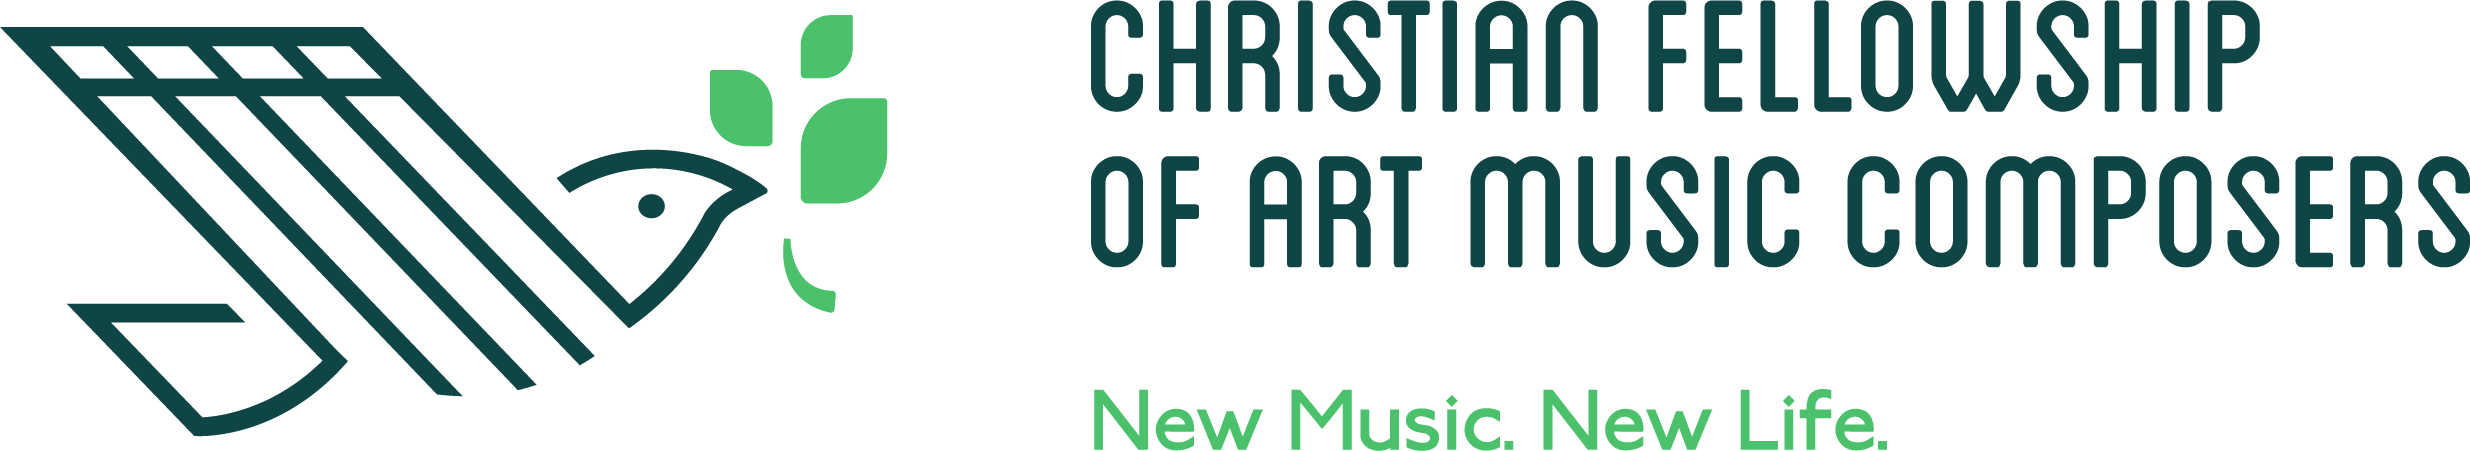 Christian Fellowship of Art Music Composers